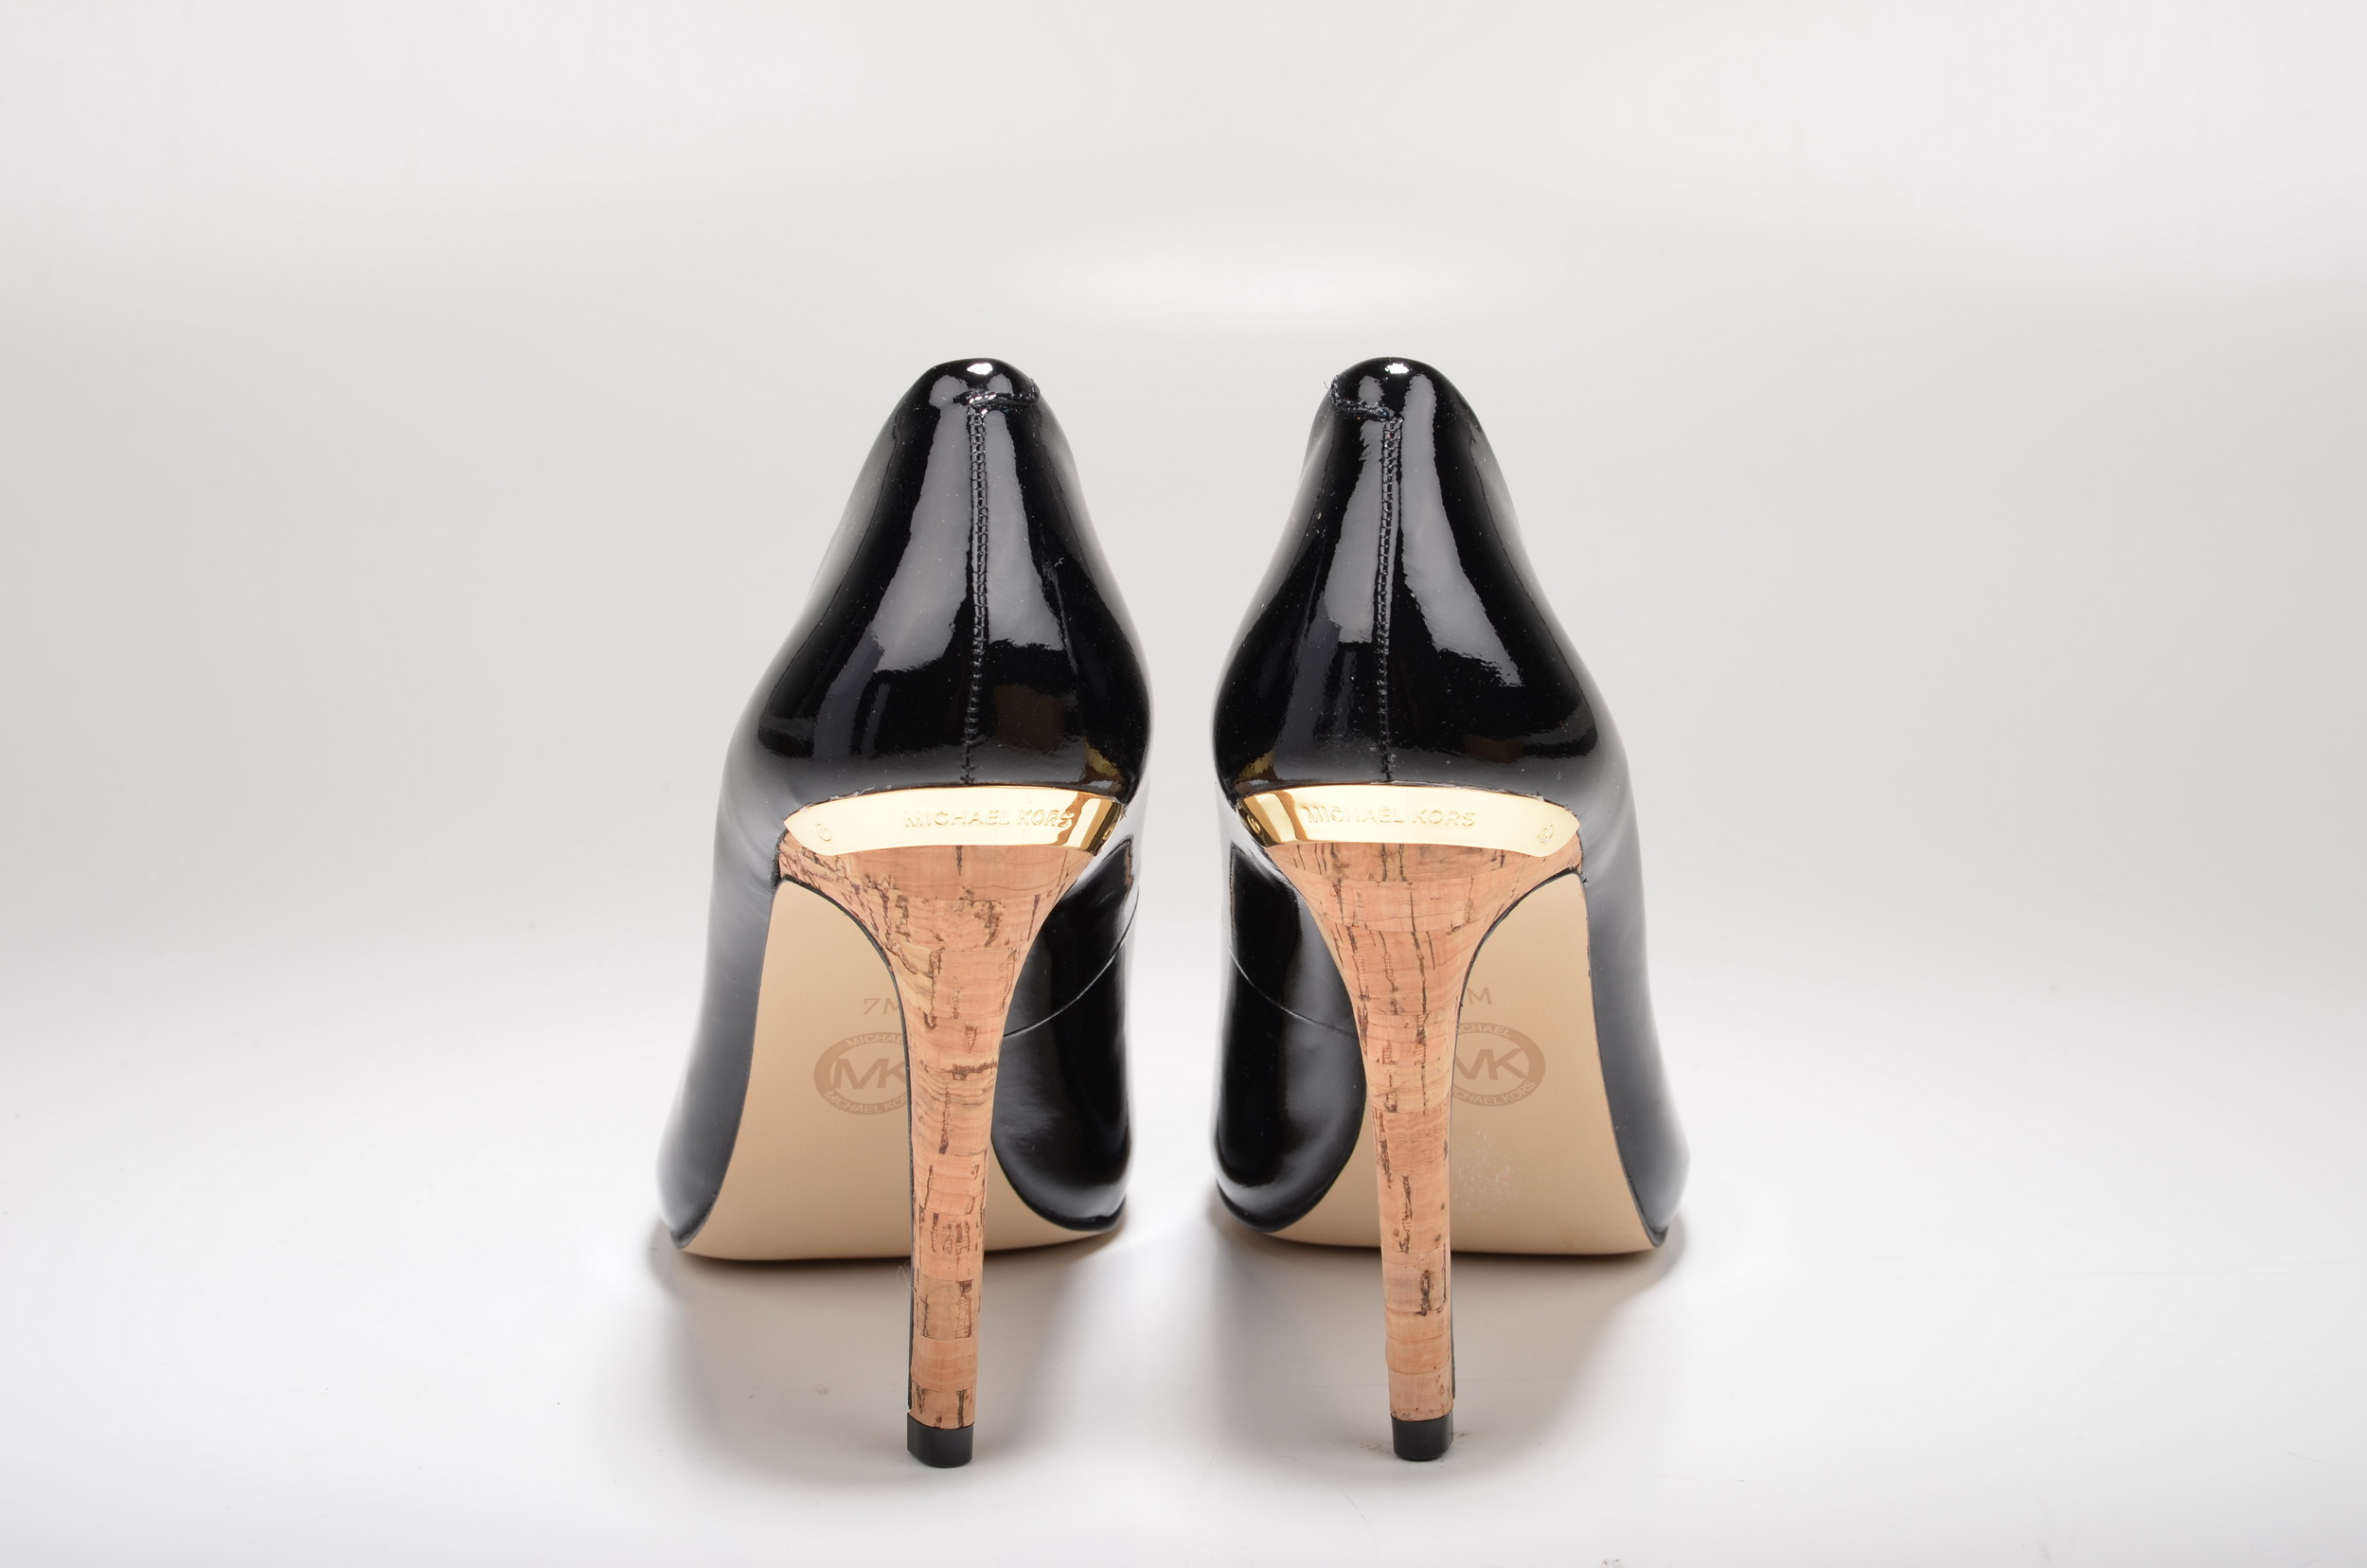 File:Michael Kors Keegan Pump Peep Toe High Heel mit